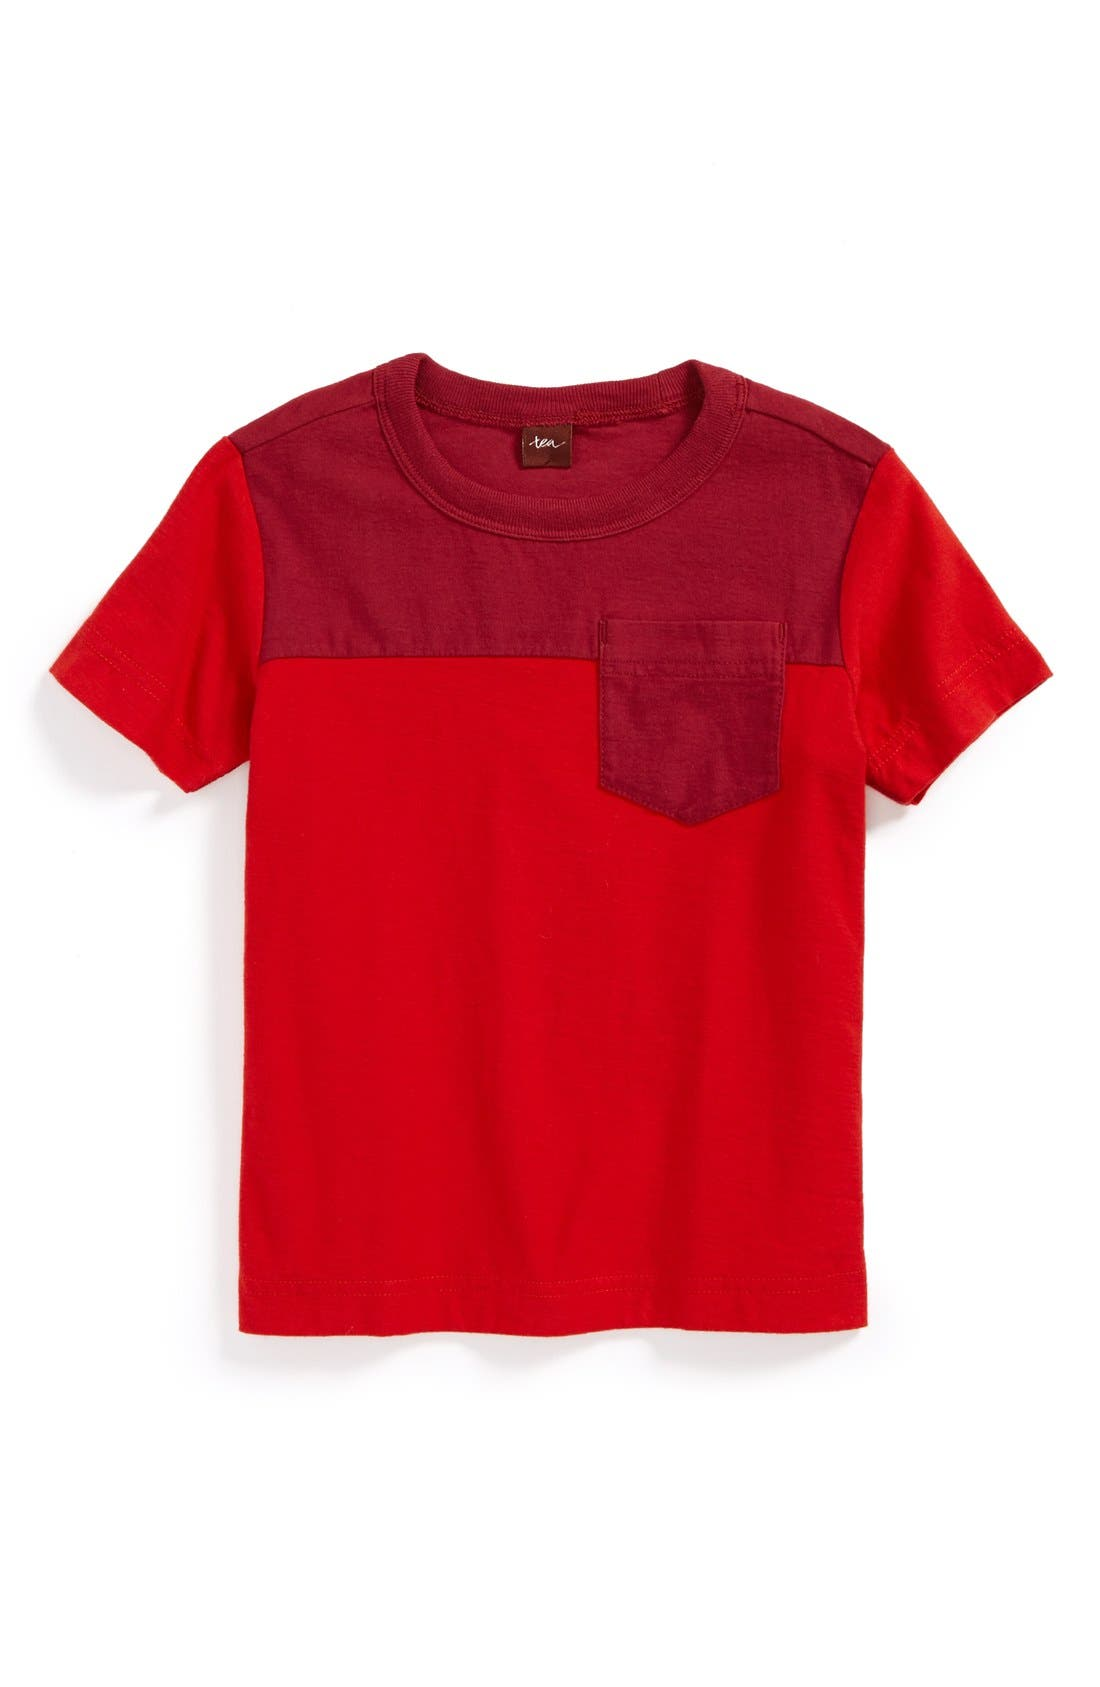 Alternate Image 1 Selected - Tea Collection Colorblock T-Shirt (Toddler Boys)